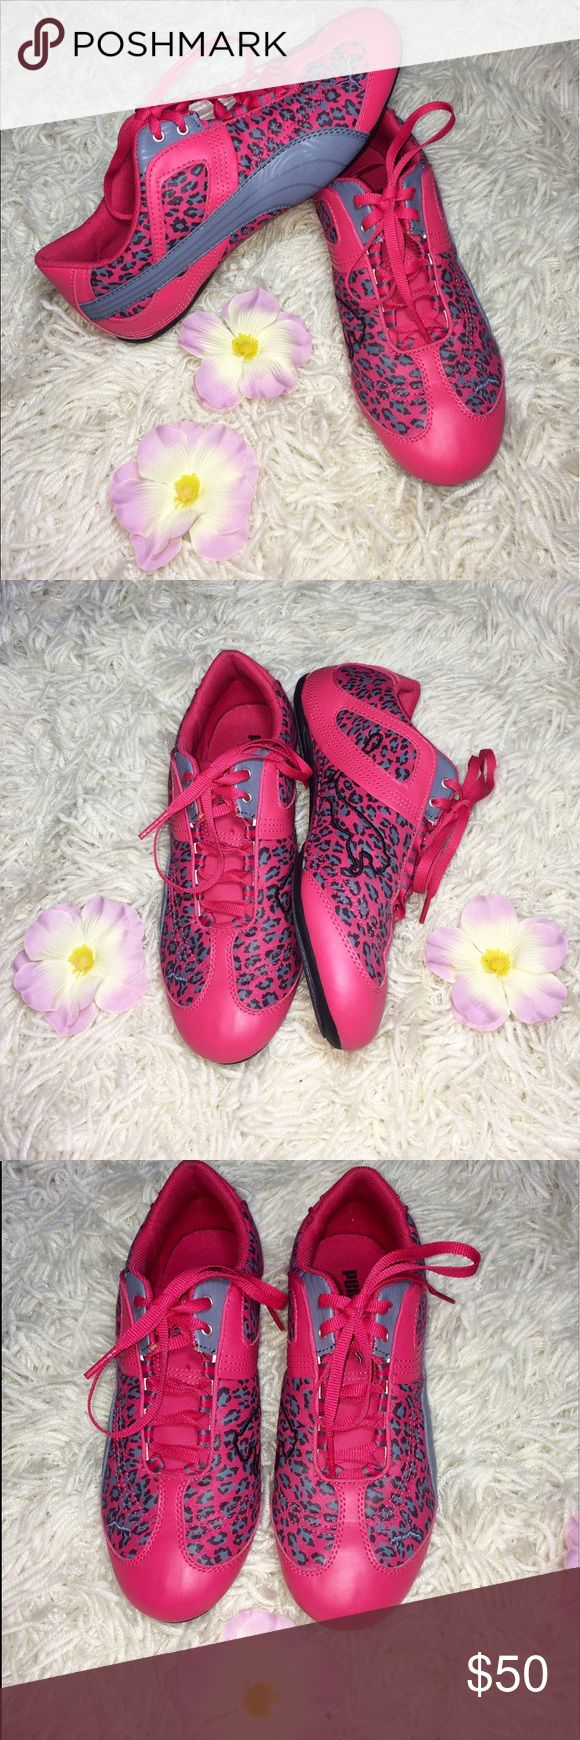 NEW! Hot Pink Cheetah Puma Sneakers Size 6.5 Grab these bright and bold hot pink Puma sneakers. They are brand new and in a size 6.5. Cool pairing with a gym outfit or nice pop of color for a casual night on the town. Puma Shoes Sneakers